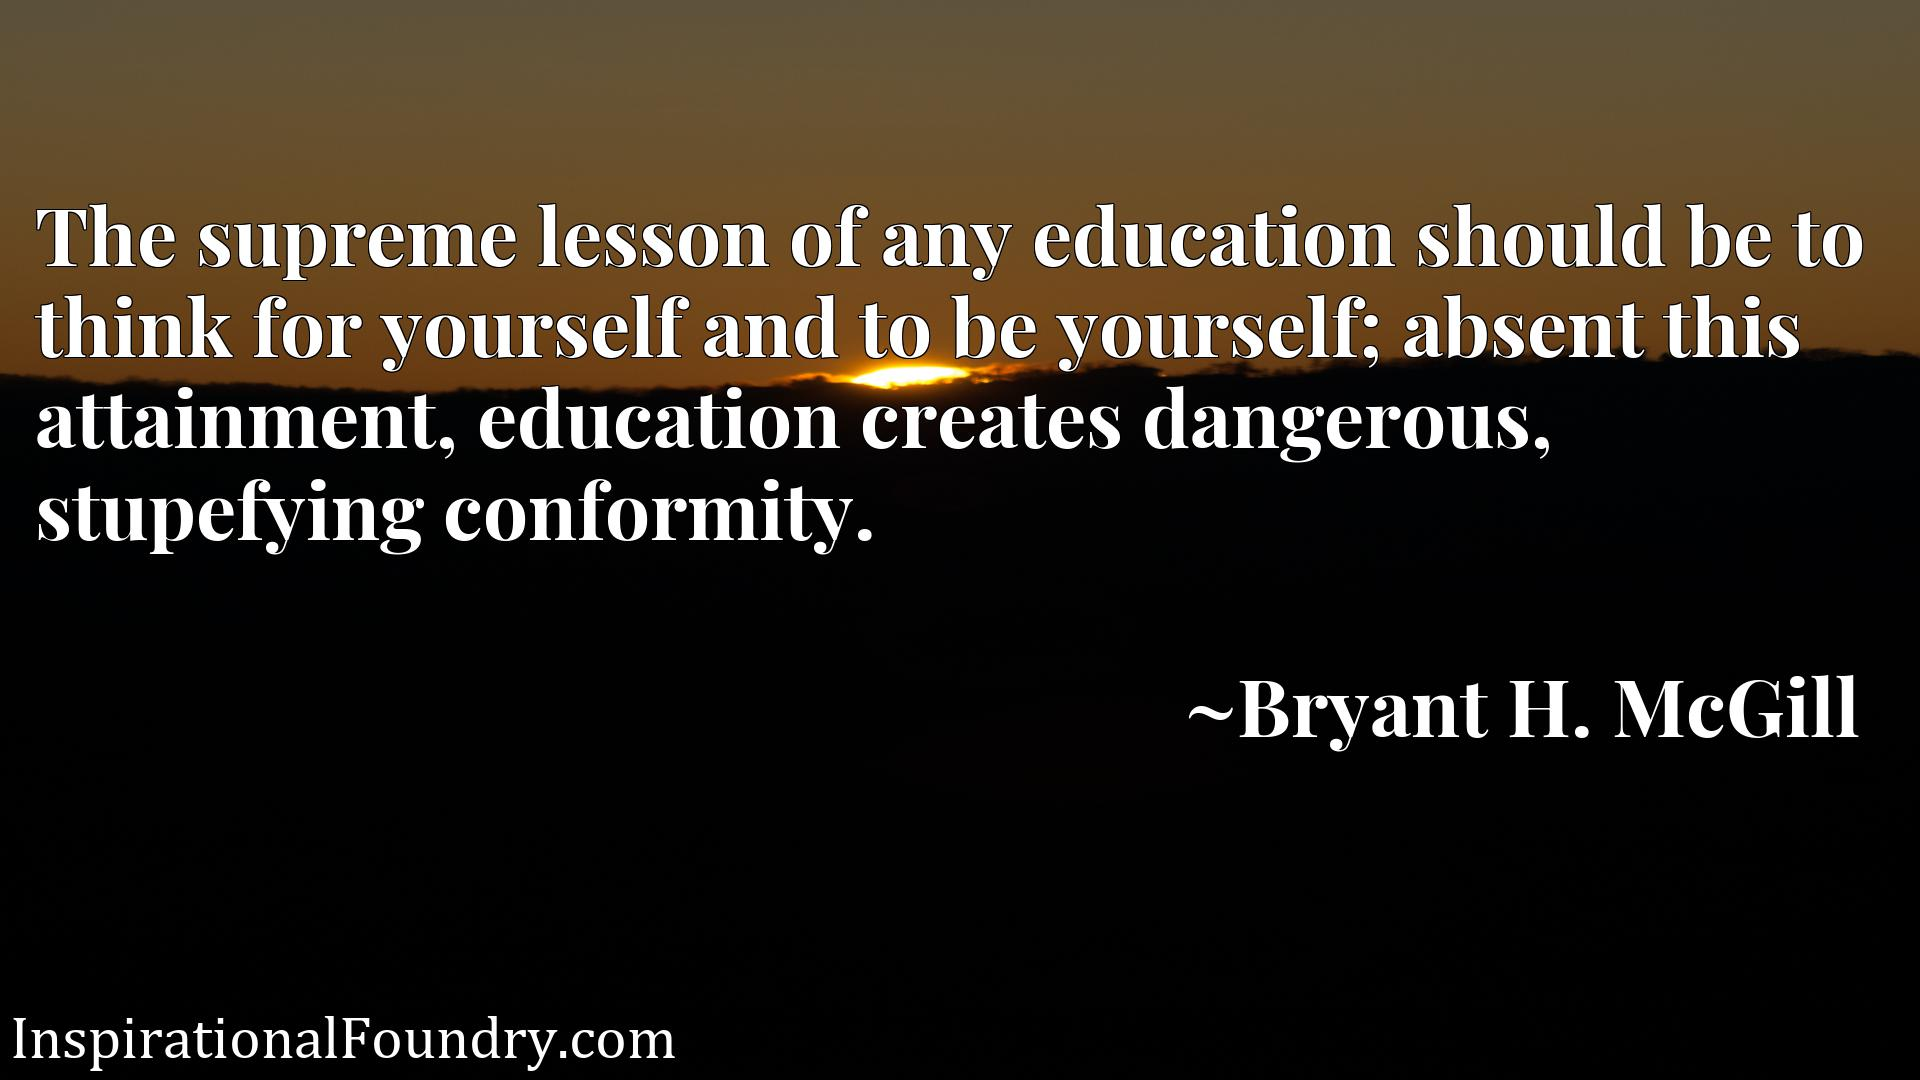 The supreme lesson of any education should be to think for yourself and to be yourself; absent this attainment, education creates dangerous, stupefying conformity.